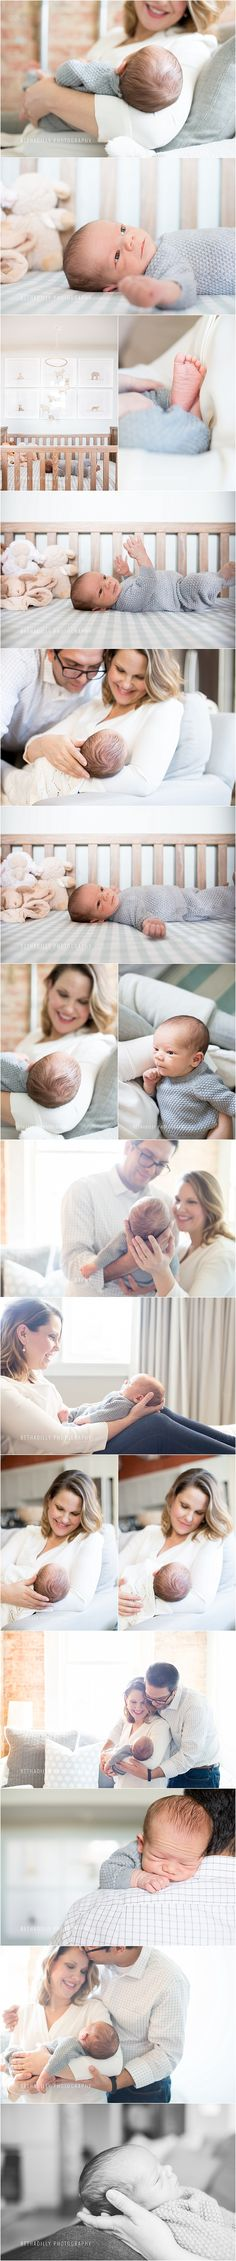 The First 17 Days | Washington DC Newborn Baby Photographer | Bethadilly Photography